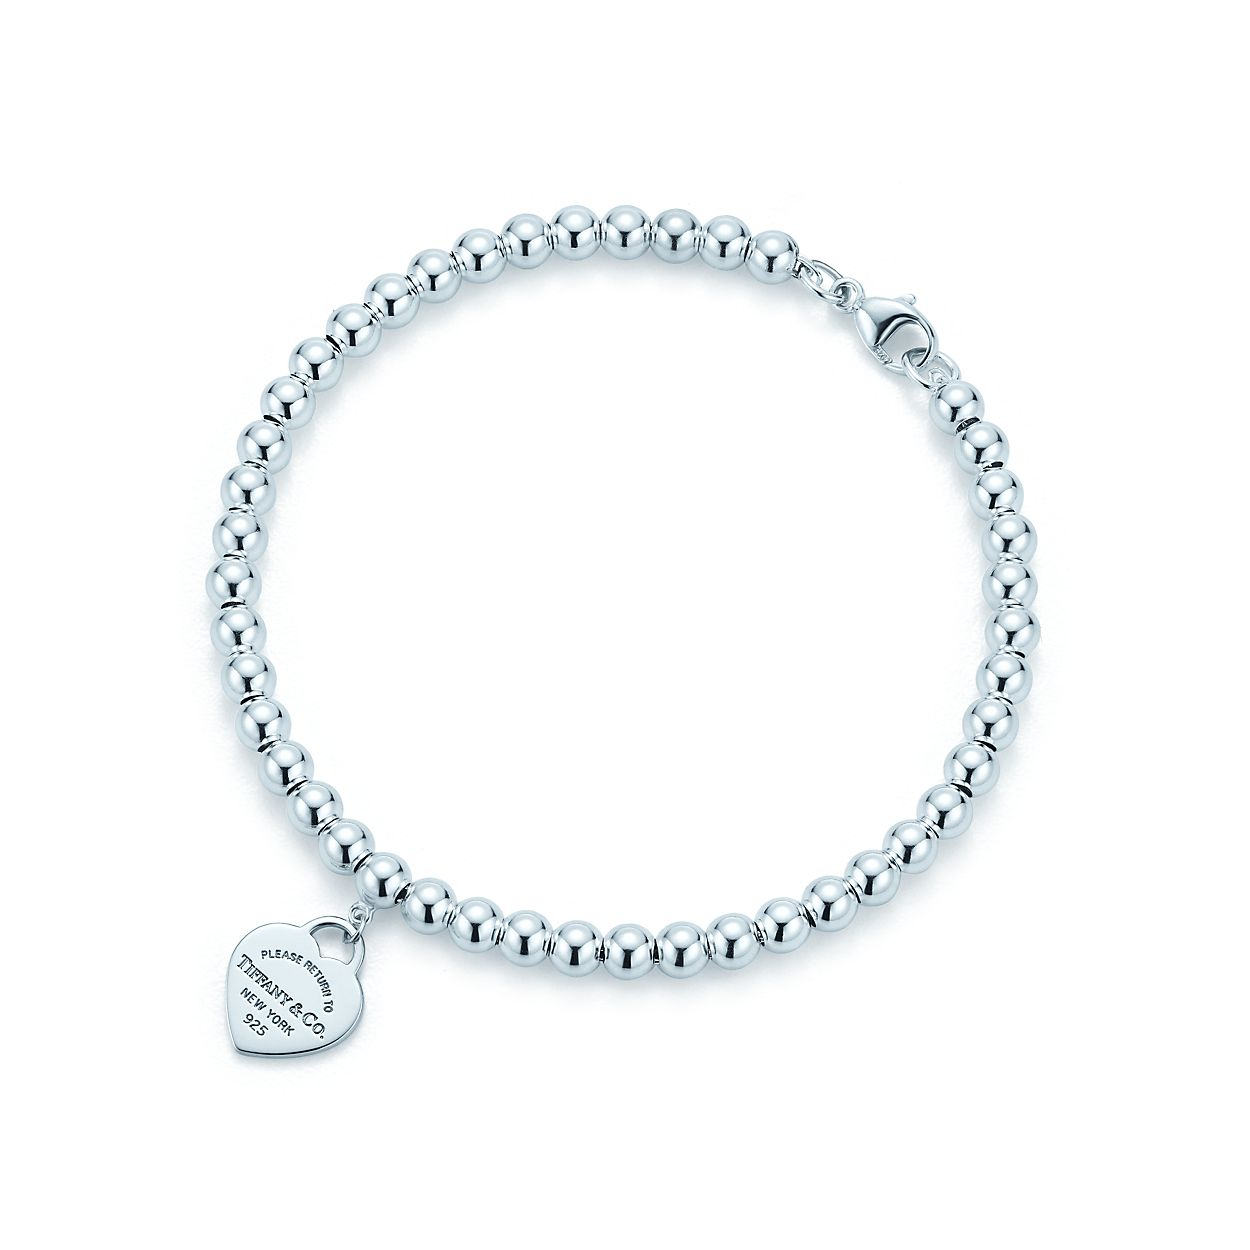 Homely Design Tiffany Silver Bracelets Return To Mini Heart Tag In Sterling  On A Bead Bracelet Uk Ebay Mens